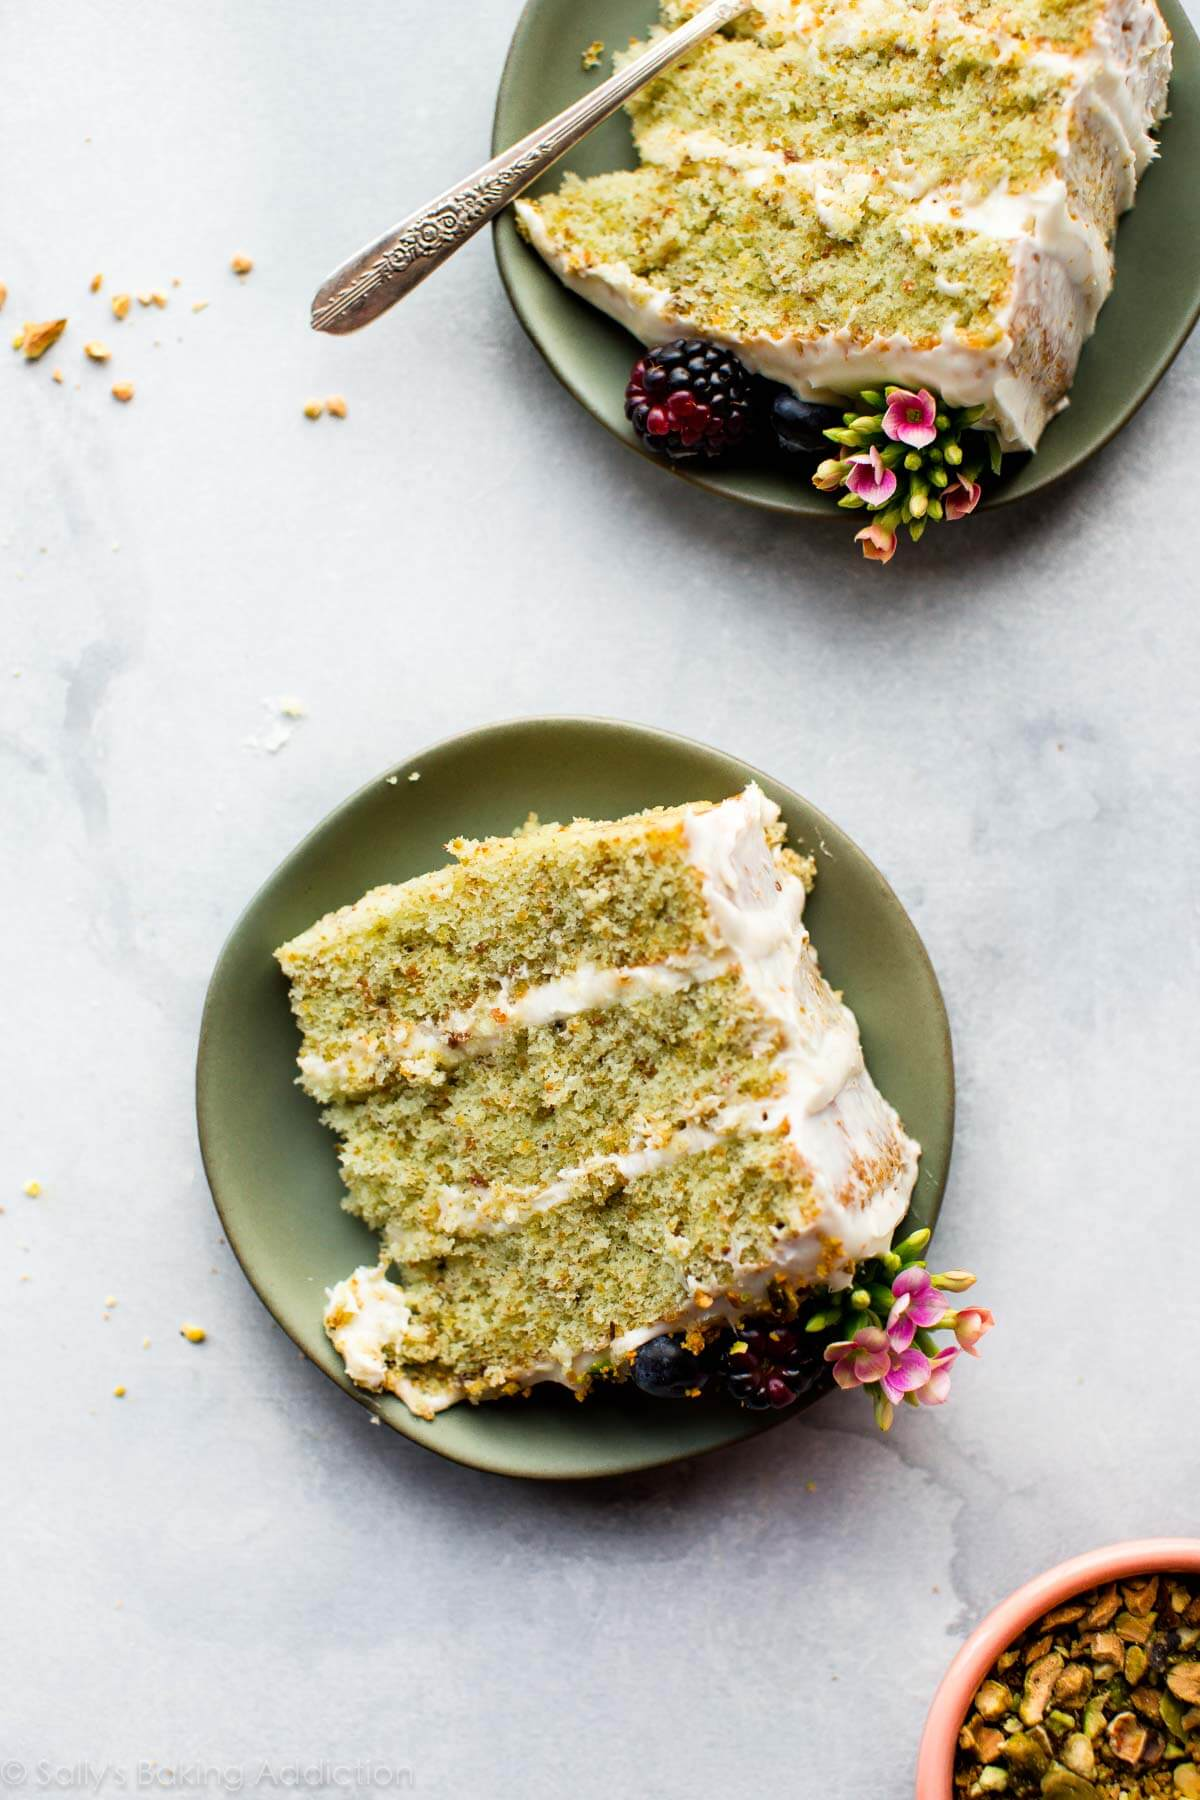 Pistachio Cake - Sallys Baking Addiction